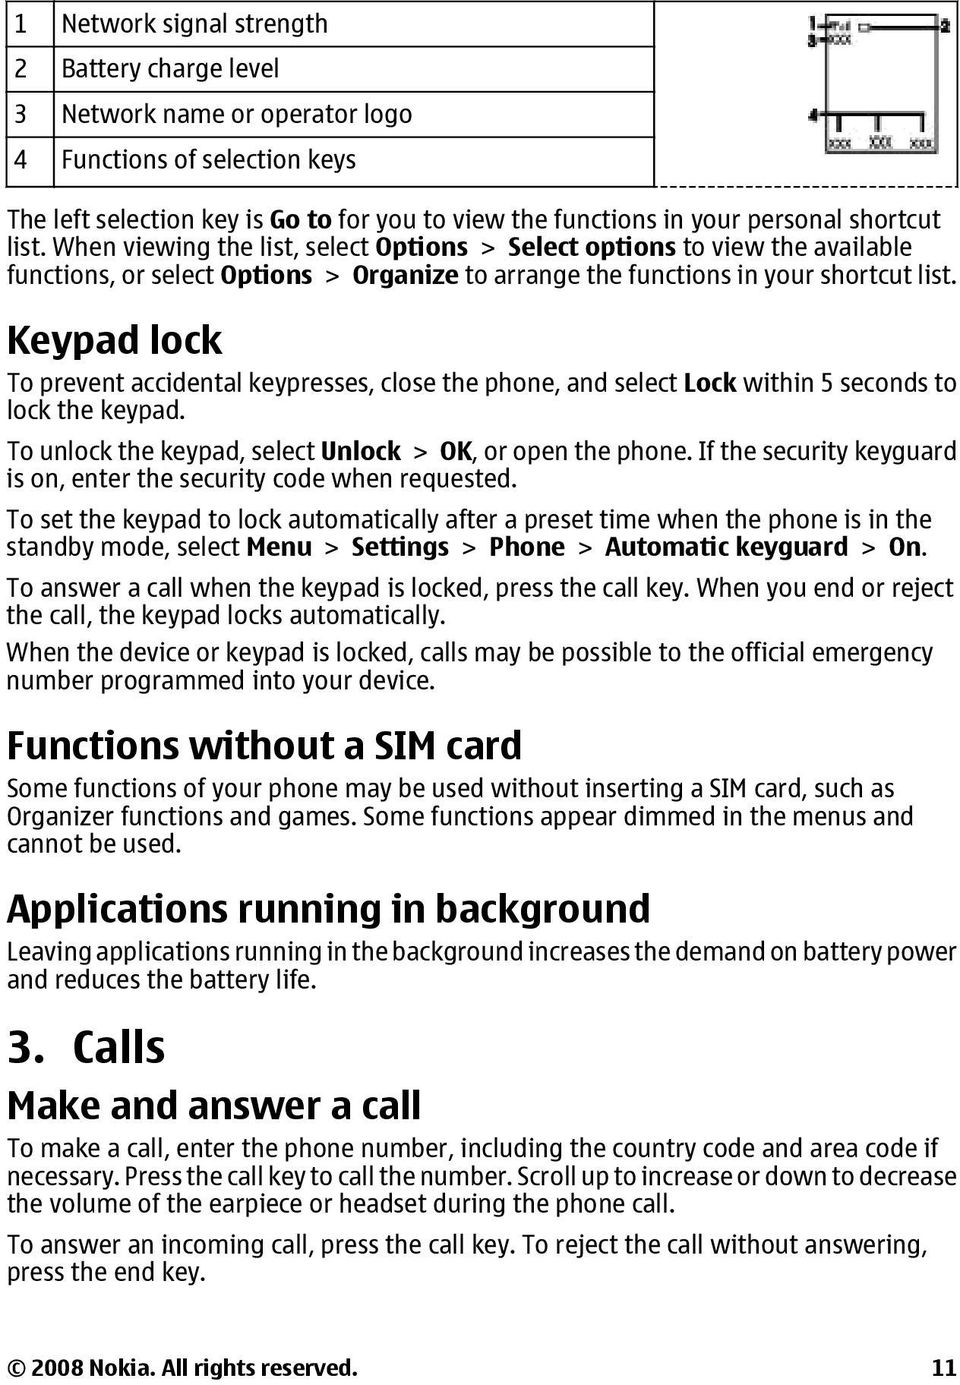 Keypad lock To prevent accidental keypresses, close the phone, and select Lock within 5 seconds to lock the keypad. To unlock the keypad, select Unlock > OK, or open the phone.